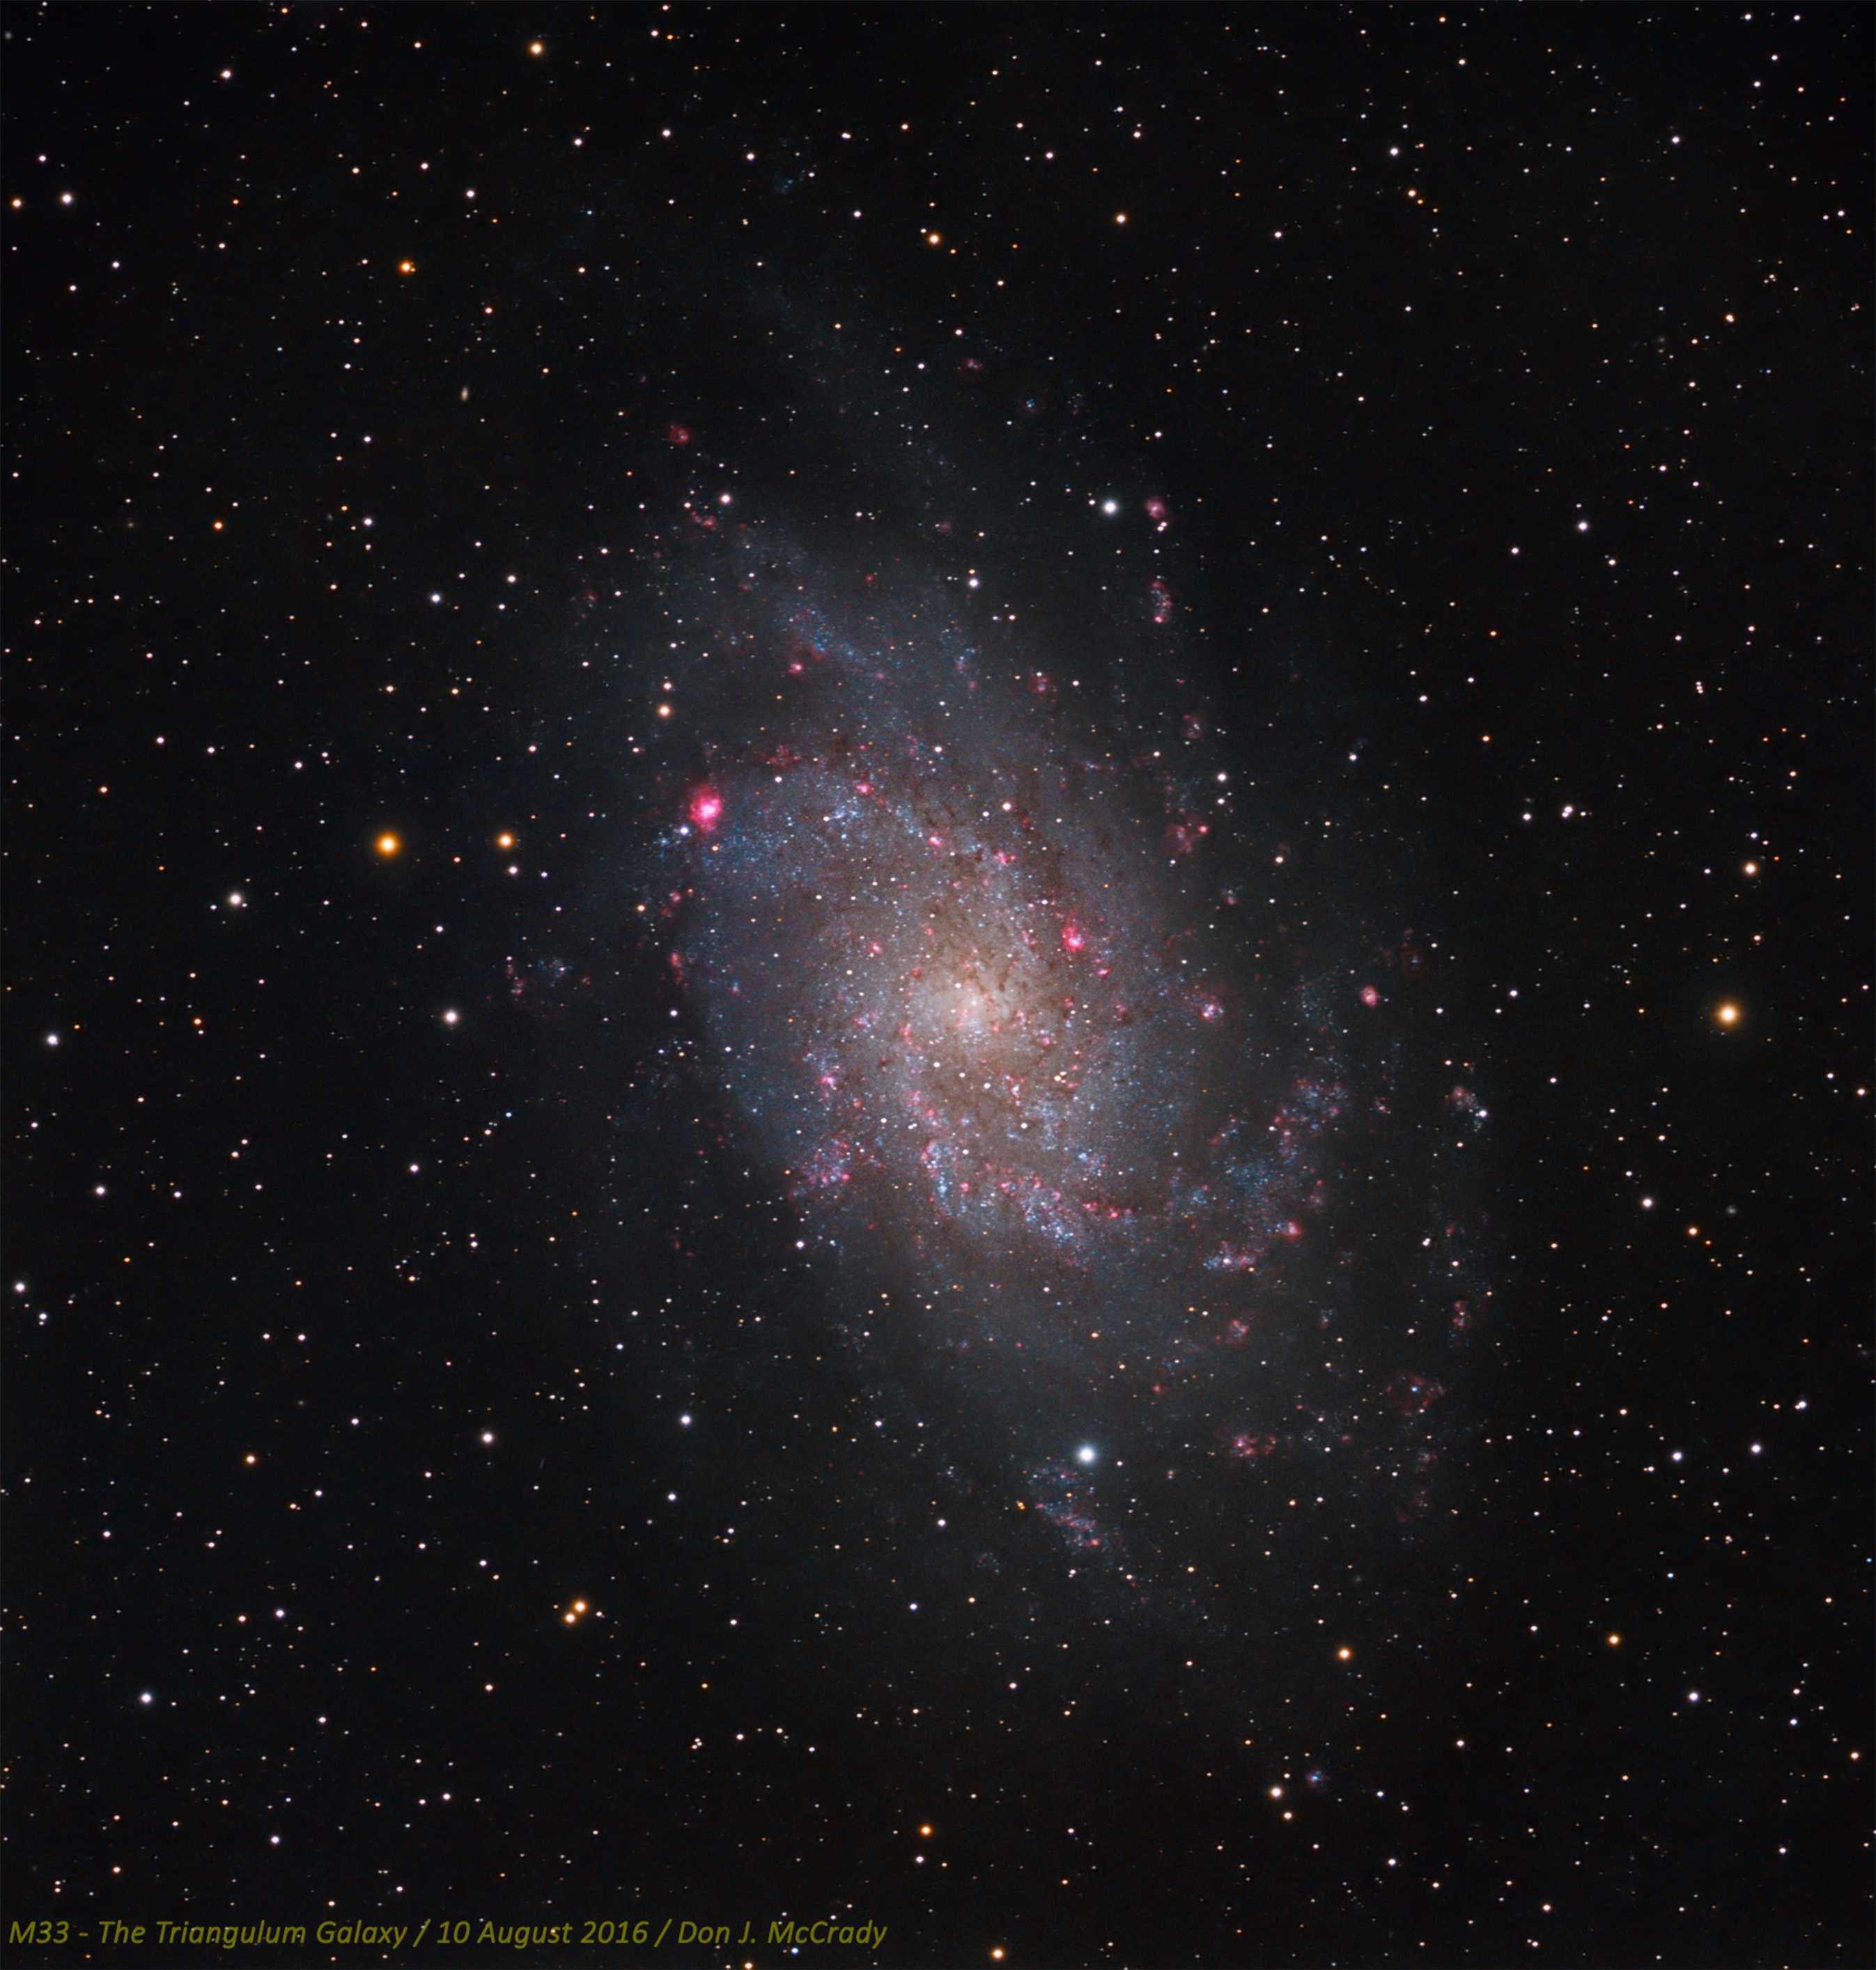 The Pinwheel galaxy, also known as M33, is one of the closest large galaxies to our own, and also one of the brightest. Although it has a low surface brightness, it can be seen with the unaided eye from a very dark rural site. The brightest HII region has its own NGC designation, NGC 604, and can also be easily seen in an amateur telescope at moderate power. The image is a combination of Red, Green, and Blue, augmented with a layer of Hydrogen-alpha to bring out the HII regions. It was taken using a Stellarvue SVS130 and an SBIG STL-4020M, and processed in MaximDL, PixInsight, and Photoshop. The final image was upsampled 1.5x.